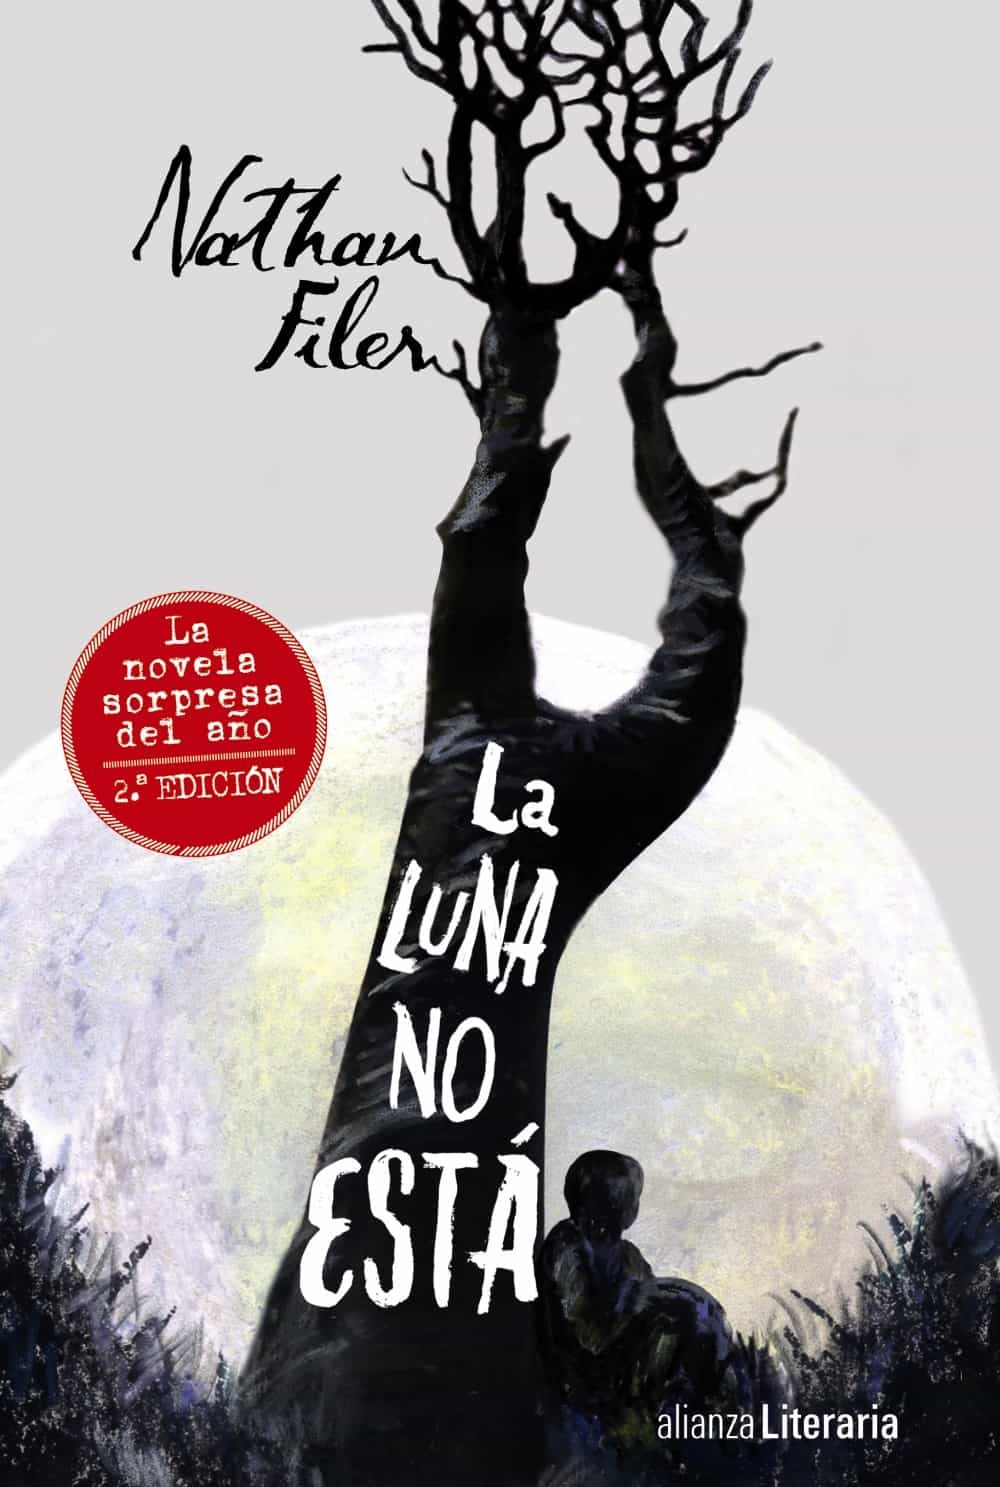 la luna no esta-nathan filer-9788420683799